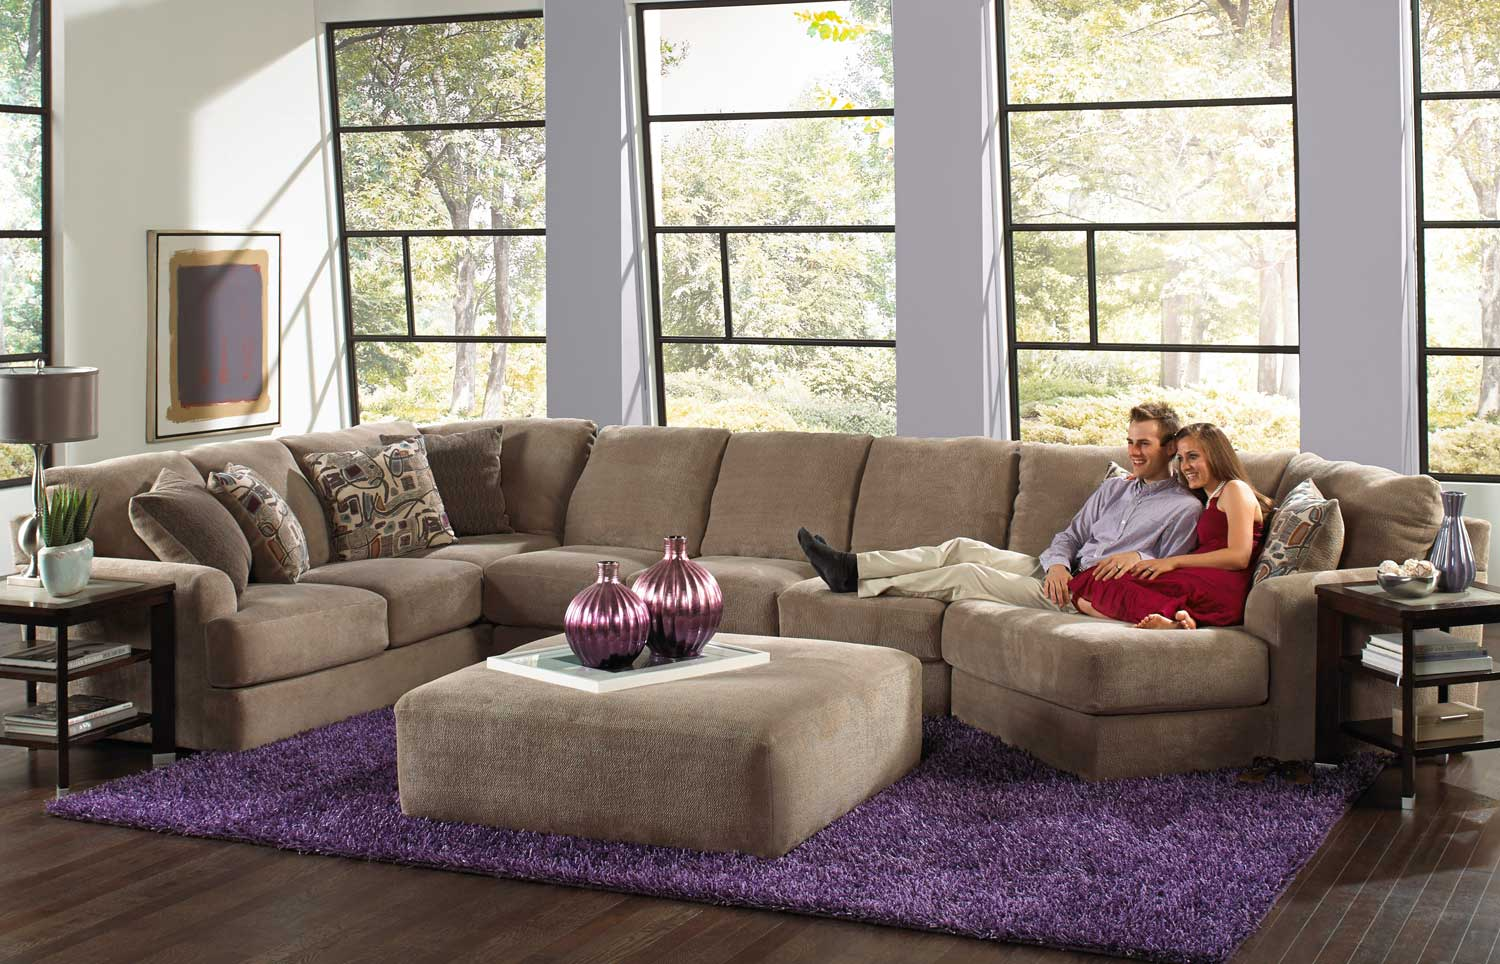 Super Jackson Malibu Large Chaise Sectional With Ottoman Set B Onthecornerstone Fun Painted Chair Ideas Images Onthecornerstoneorg